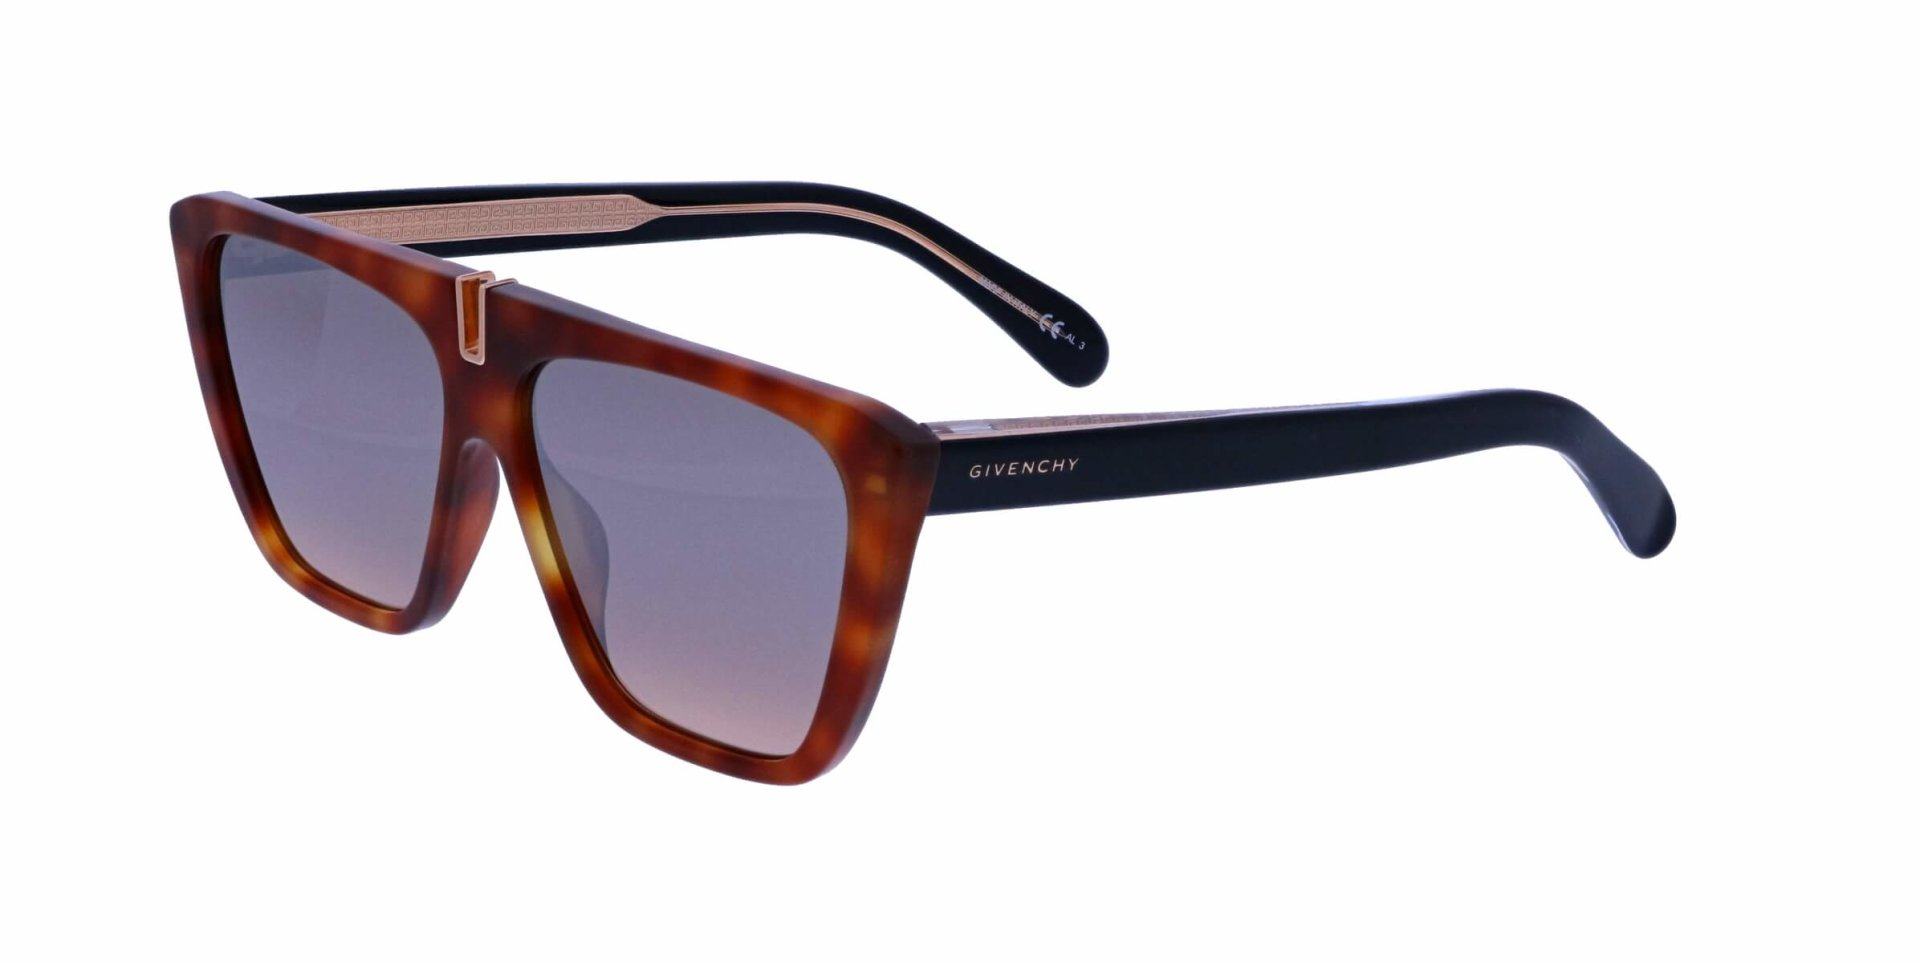 GIVENCHY 7109/S L9G/G4